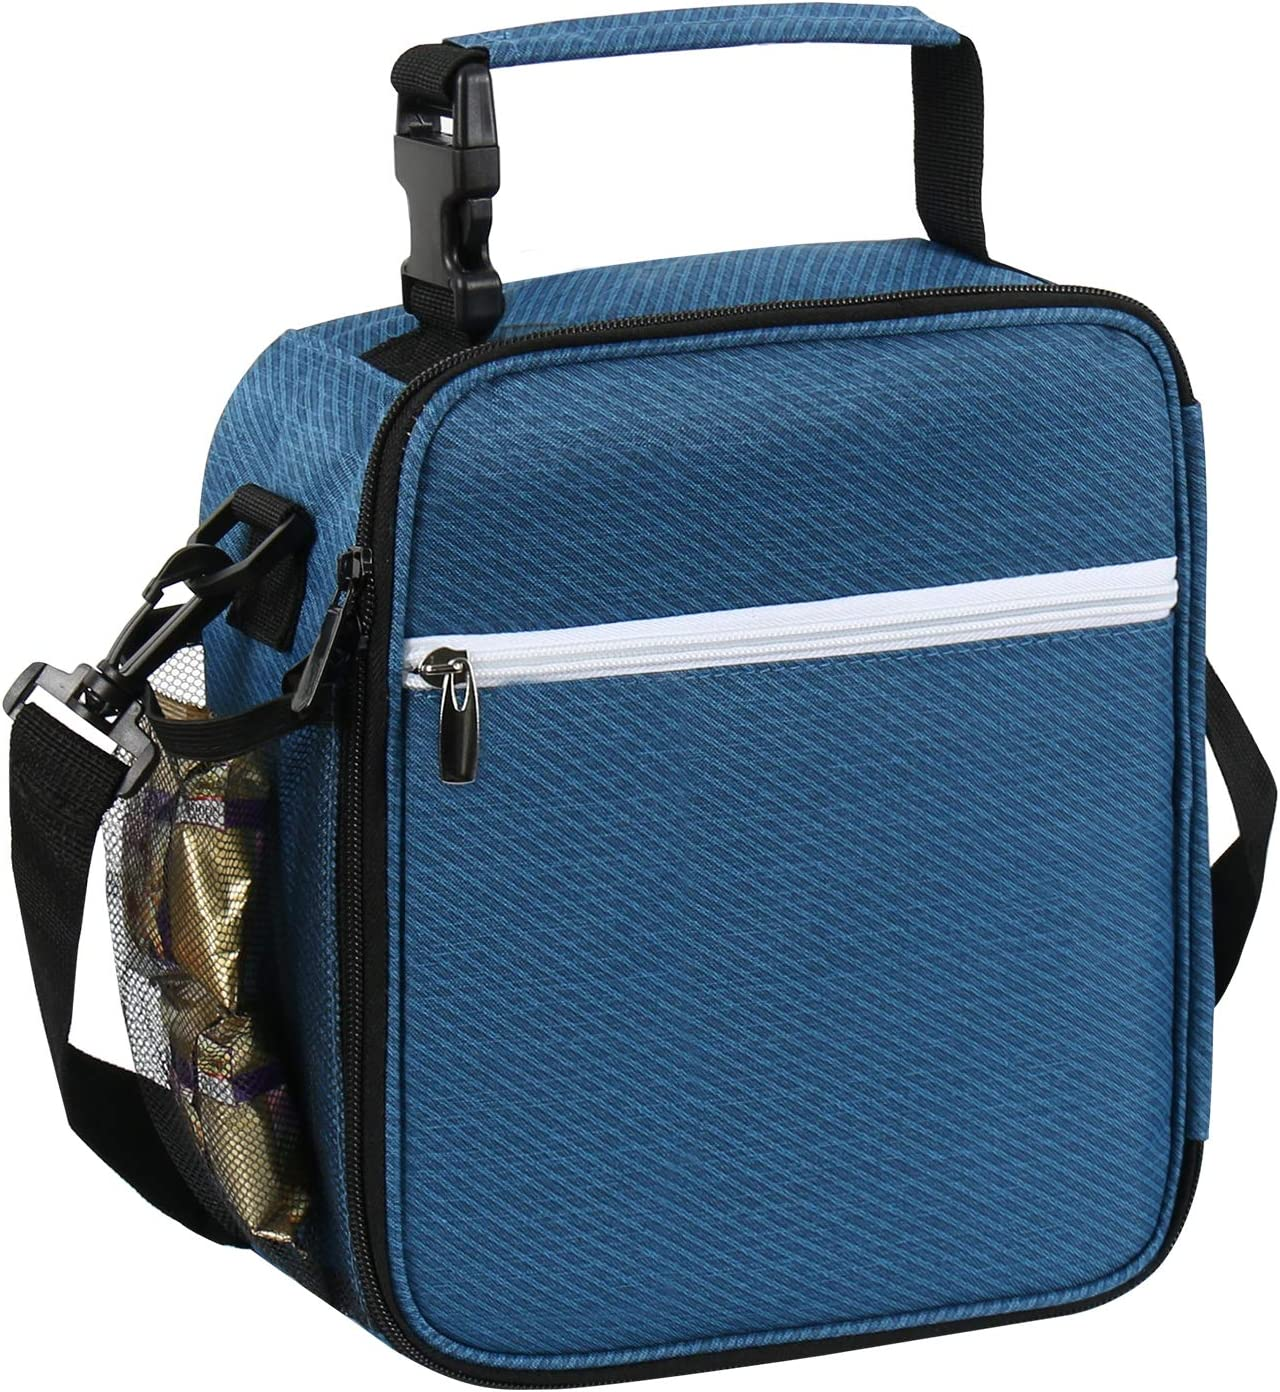 Insulated Lunch Bag Cooler Max 70% OFF Carrying w Portable Box Selling